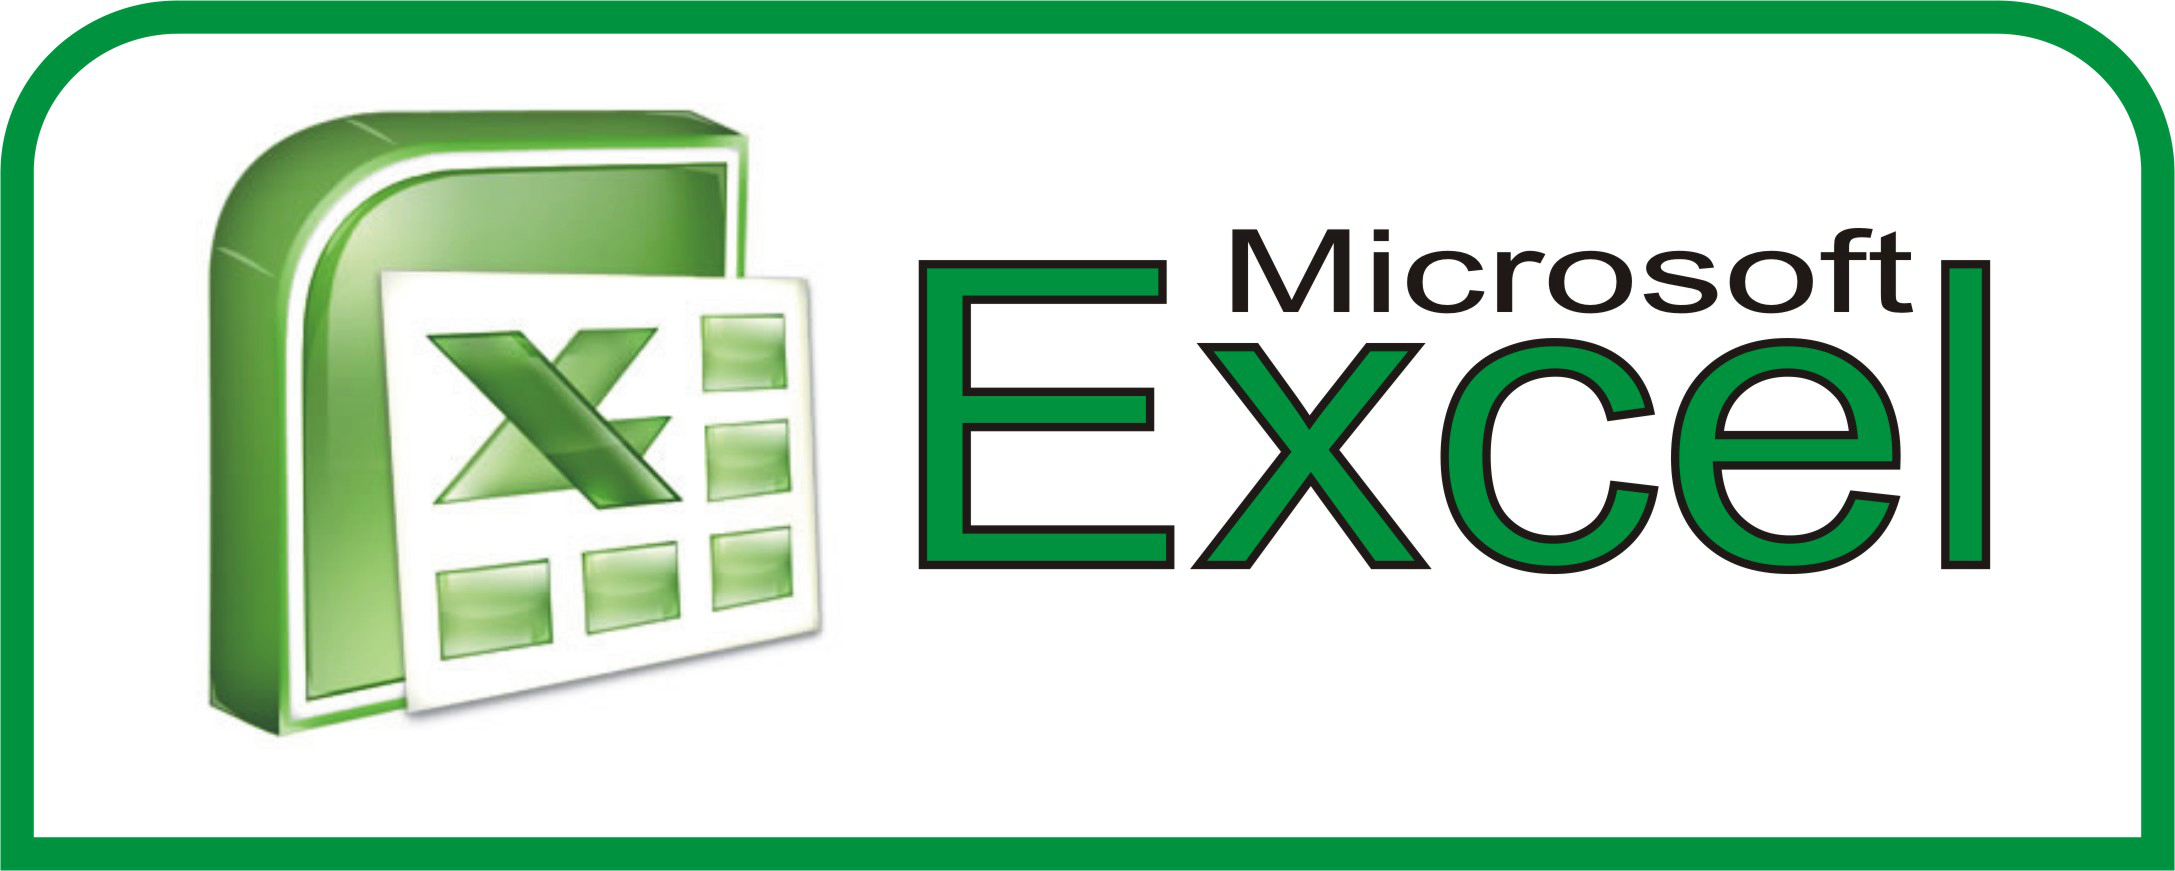 Ediblewildsus  Outstanding  Excel Shortcuts You Probably Didnt Know About  Techdissected With Goodlooking Excel Sendkeys Besides Current Date In Excel Formula Furthermore Date Conversion In Excel With Agreeable How Do I Count Cells In Excel Also Excel Replace Line Break In Addition Learn Basic Excel And Test Excel As Well As Excel Countifs Example Additionally Excel Convert Time From Techdissectedcom With Ediblewildsus  Goodlooking  Excel Shortcuts You Probably Didnt Know About  Techdissected With Agreeable Excel Sendkeys Besides Current Date In Excel Formula Furthermore Date Conversion In Excel And Outstanding How Do I Count Cells In Excel Also Excel Replace Line Break In Addition Learn Basic Excel From Techdissectedcom